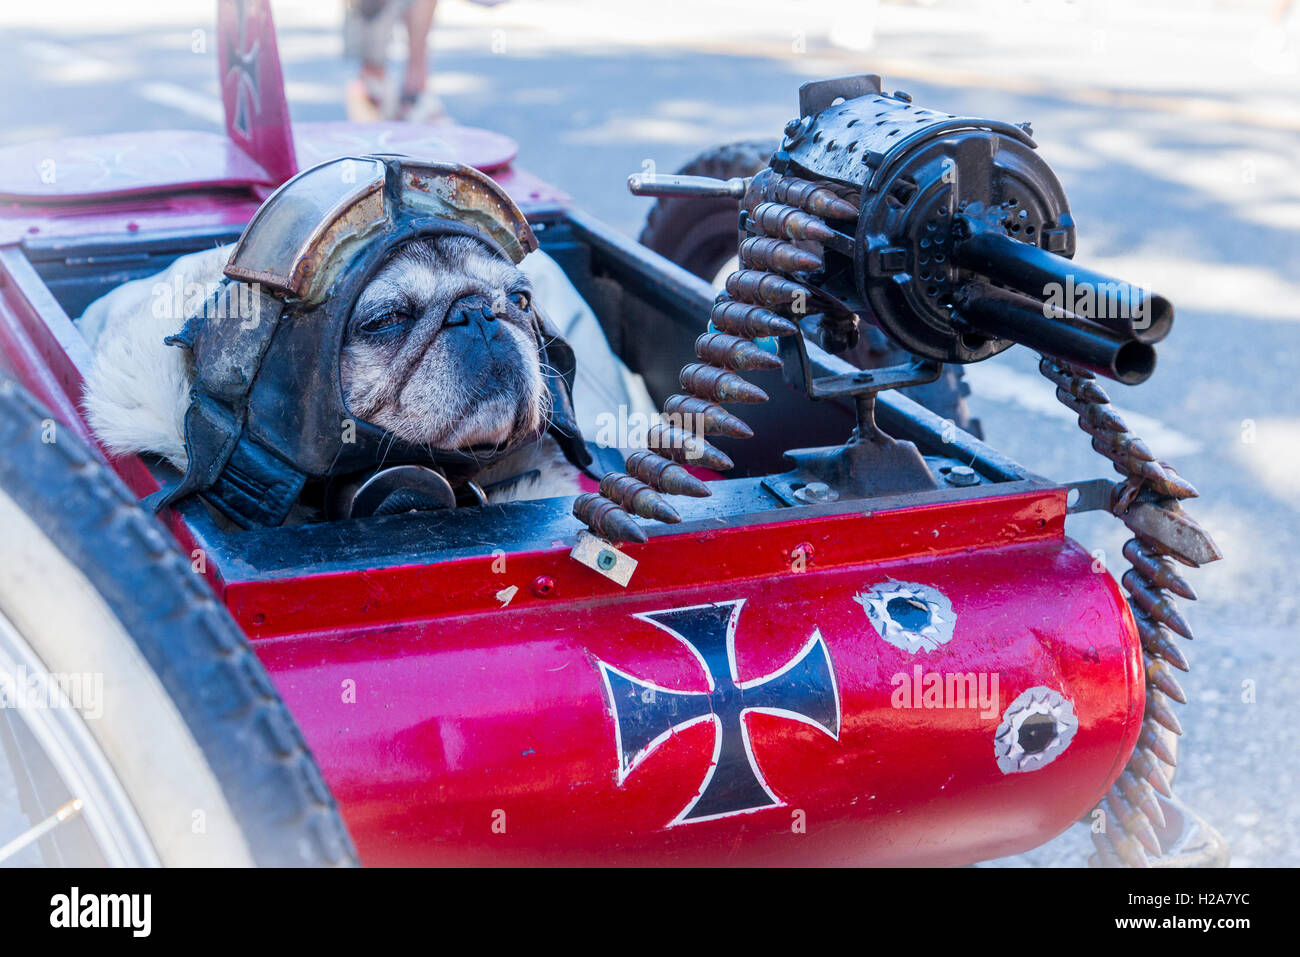 Multi-media artist Mad Dog's  punk bicycle  sidecar with machine gun and helmeted dog, Vancouver, British Columbia, - Stock Image